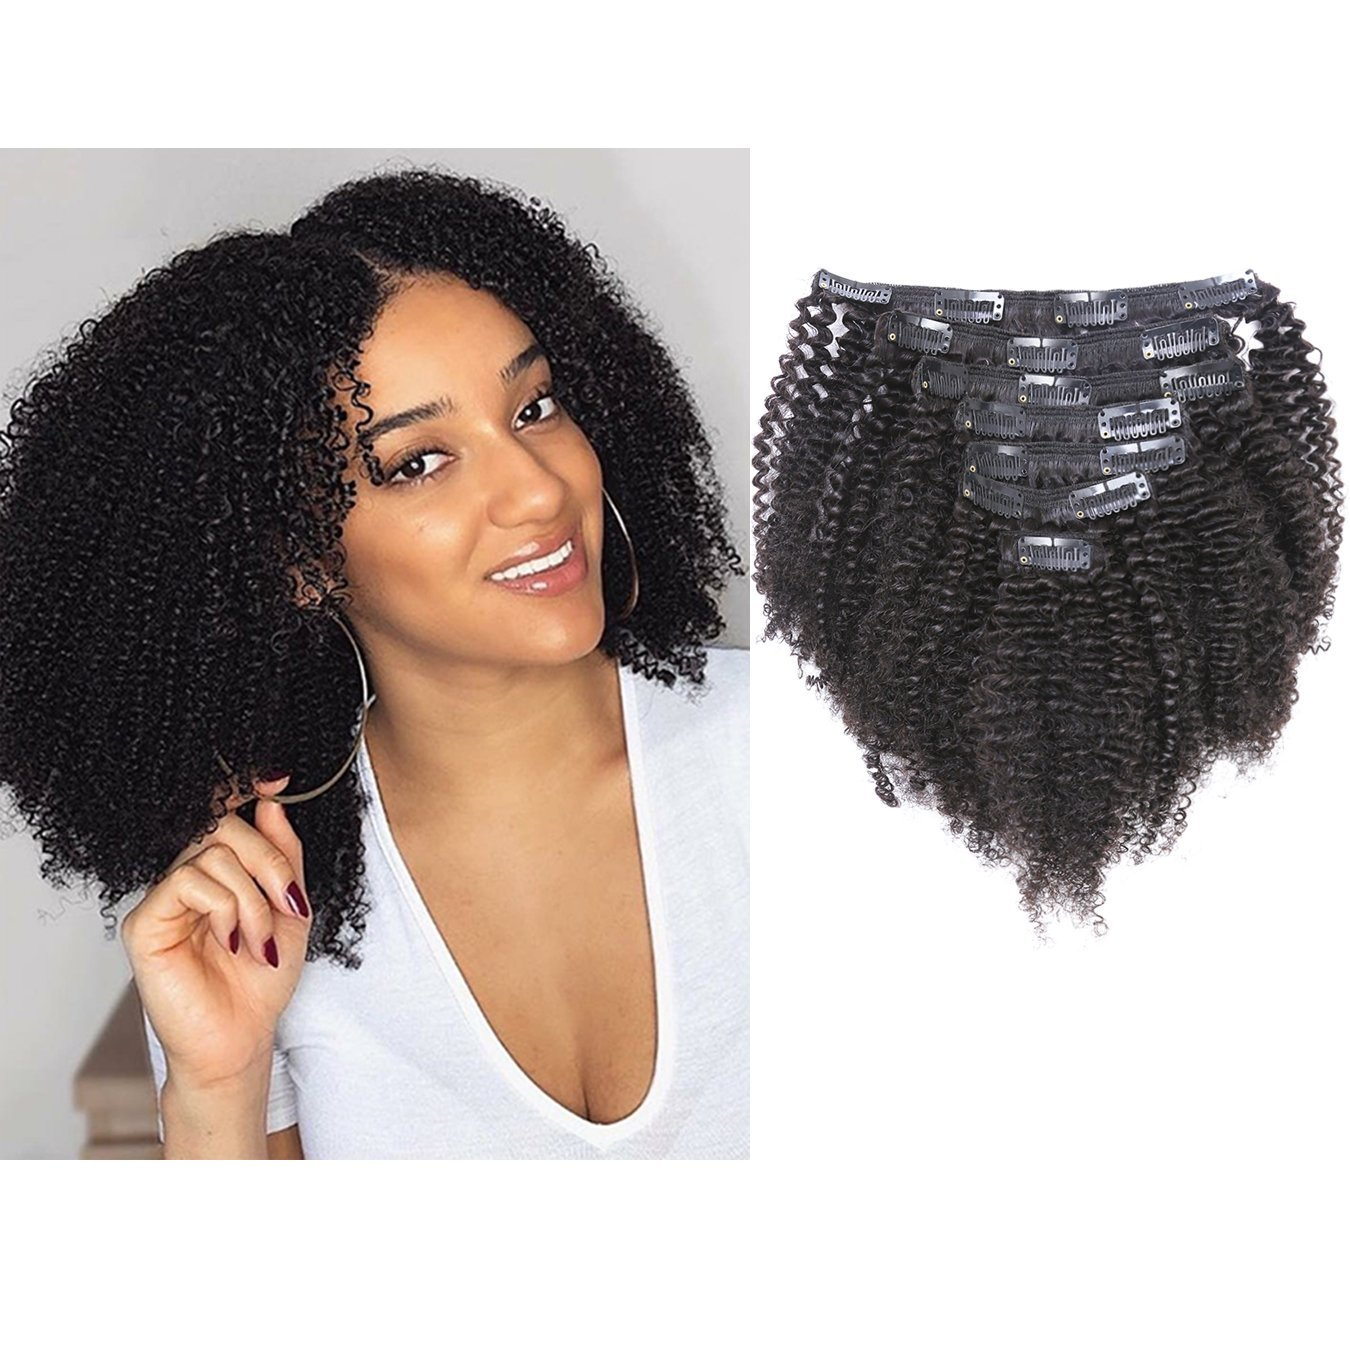 Anrosa Thick Human Hair Extensions Kinkys Curly Clip Ins Natural Black Hair Color 1b Afro Kinky Curly Clip